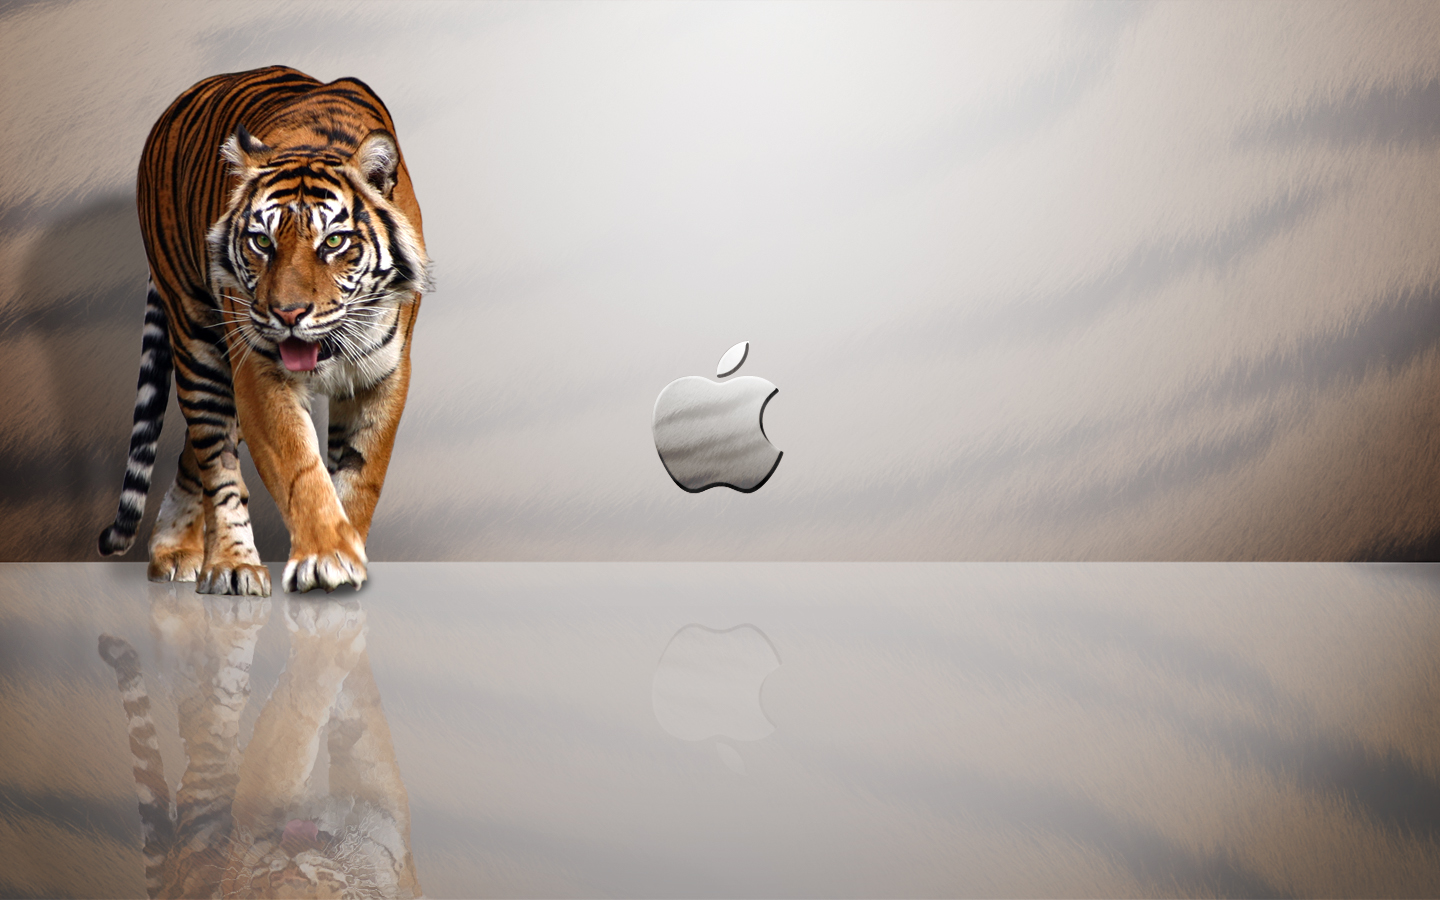 Cool Wallpapers For Mac 1440x900